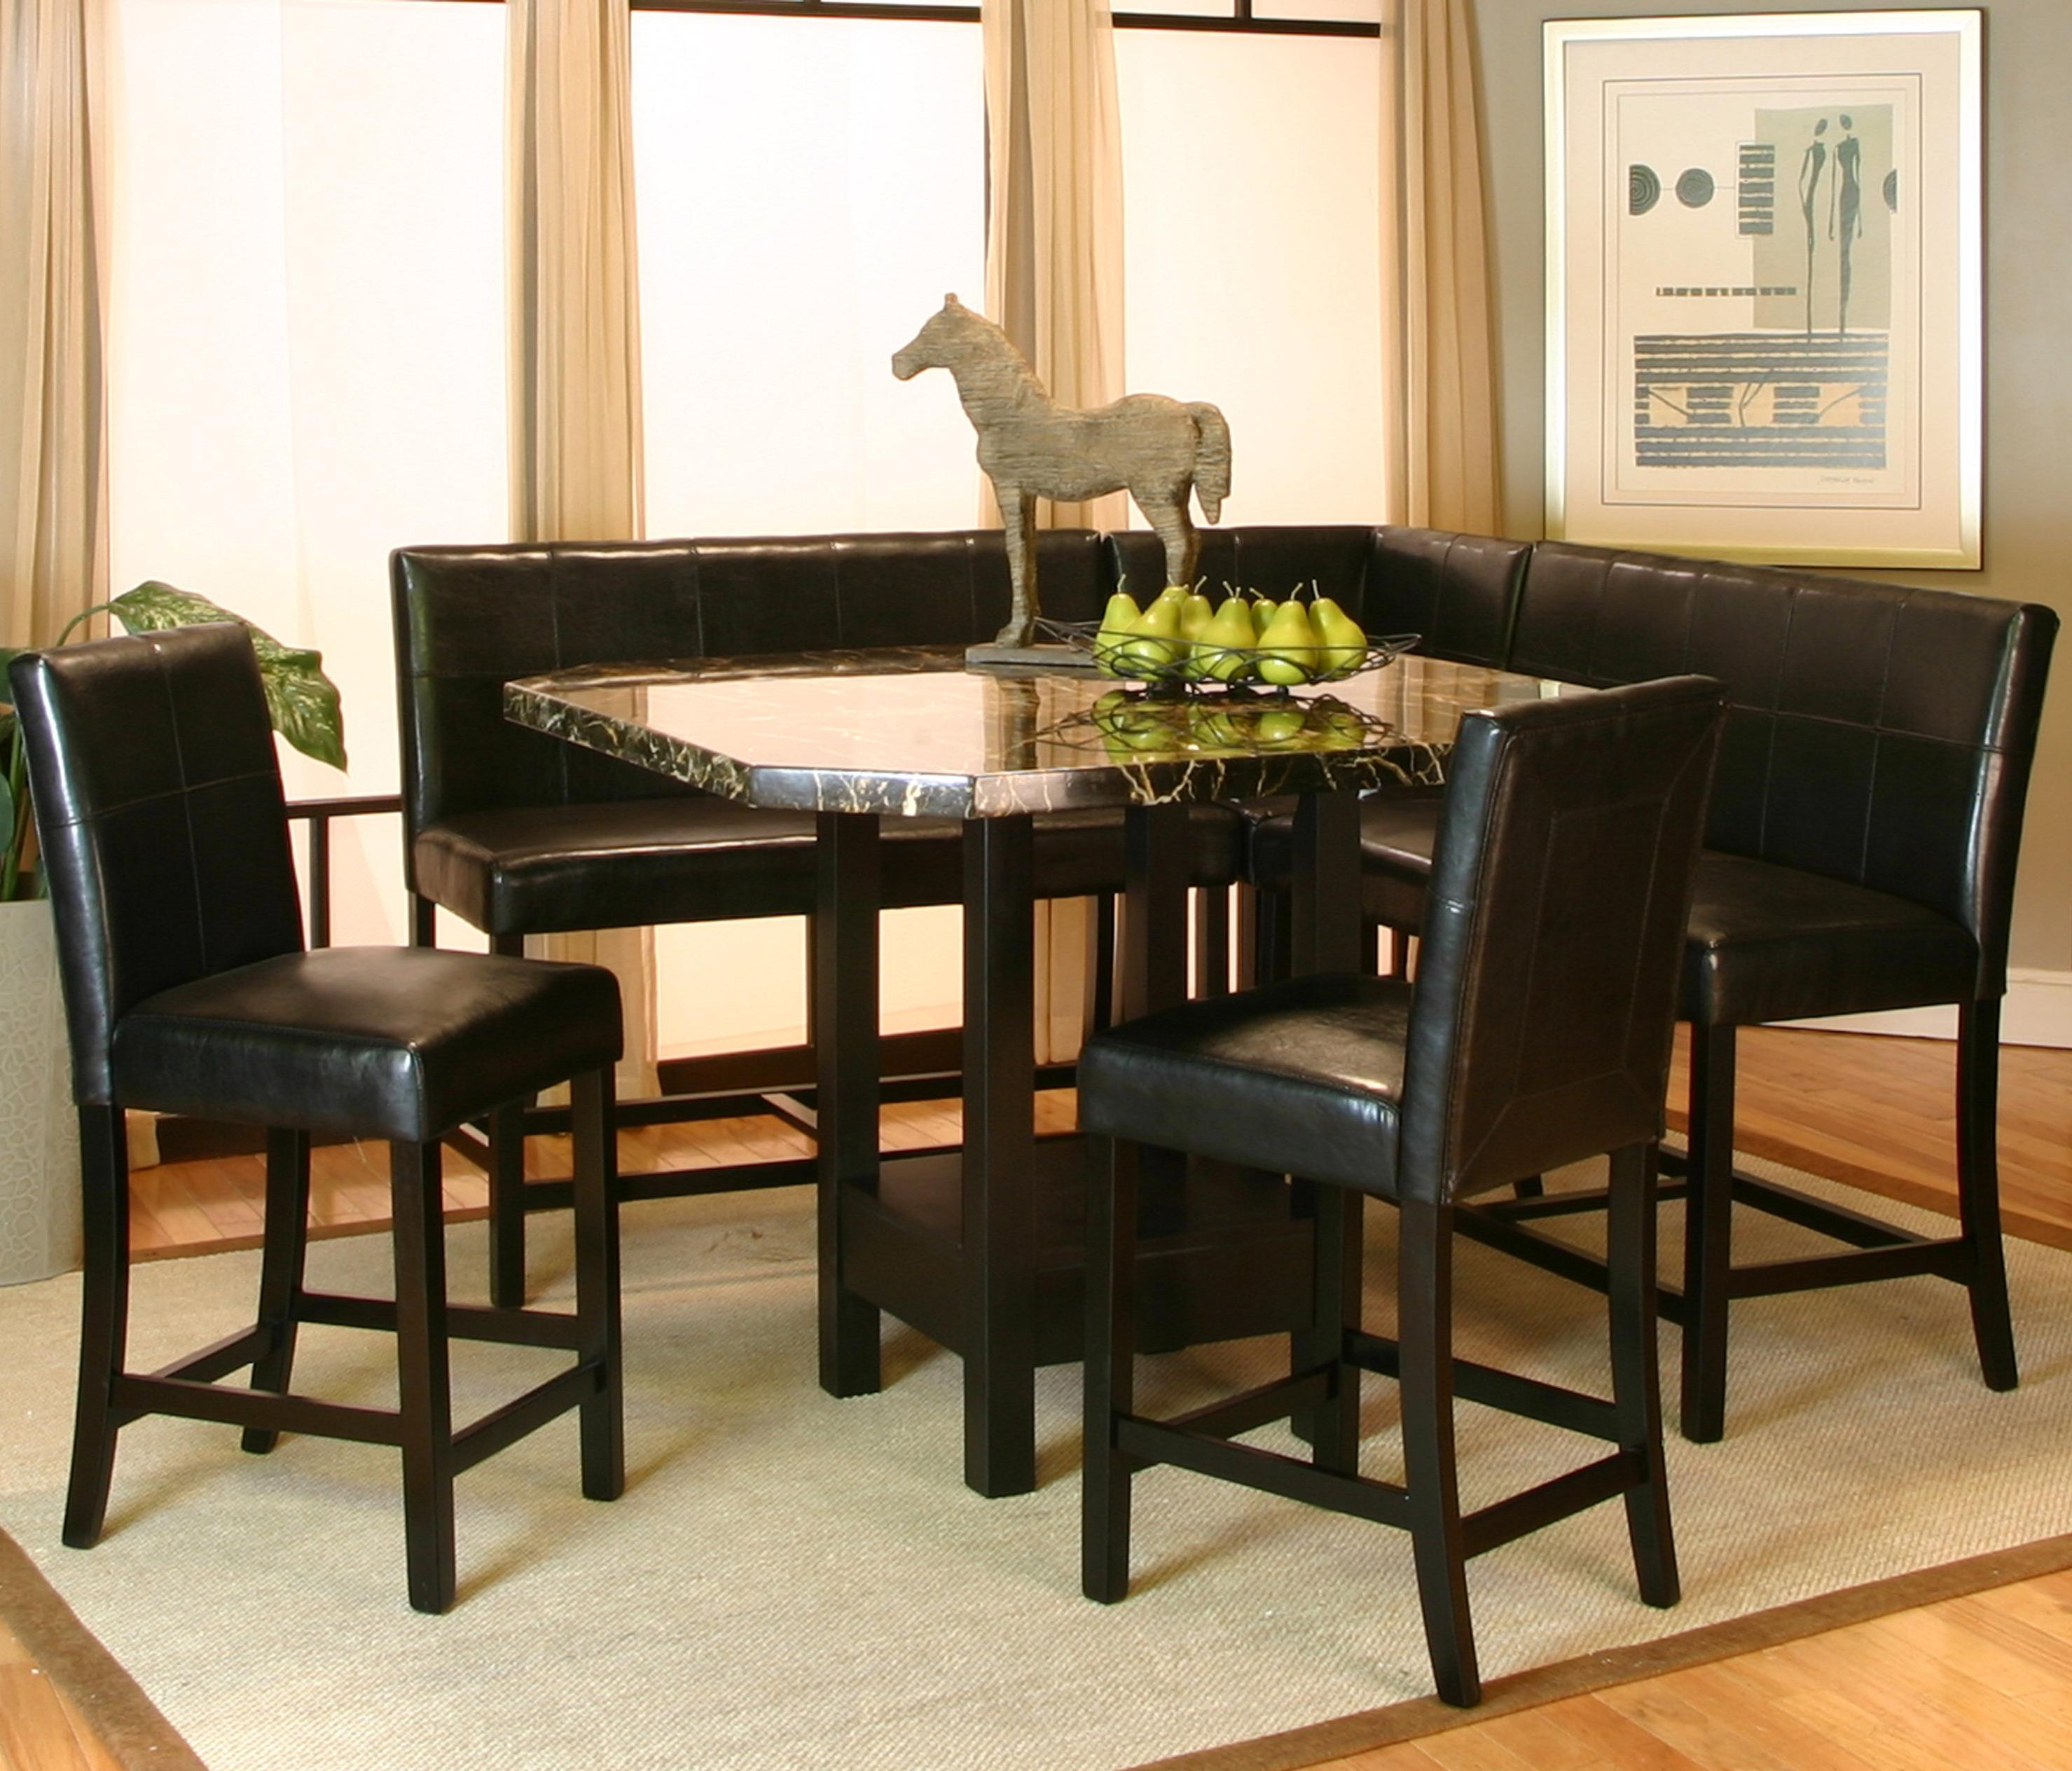 Beau 5 Piece Pub Table Set